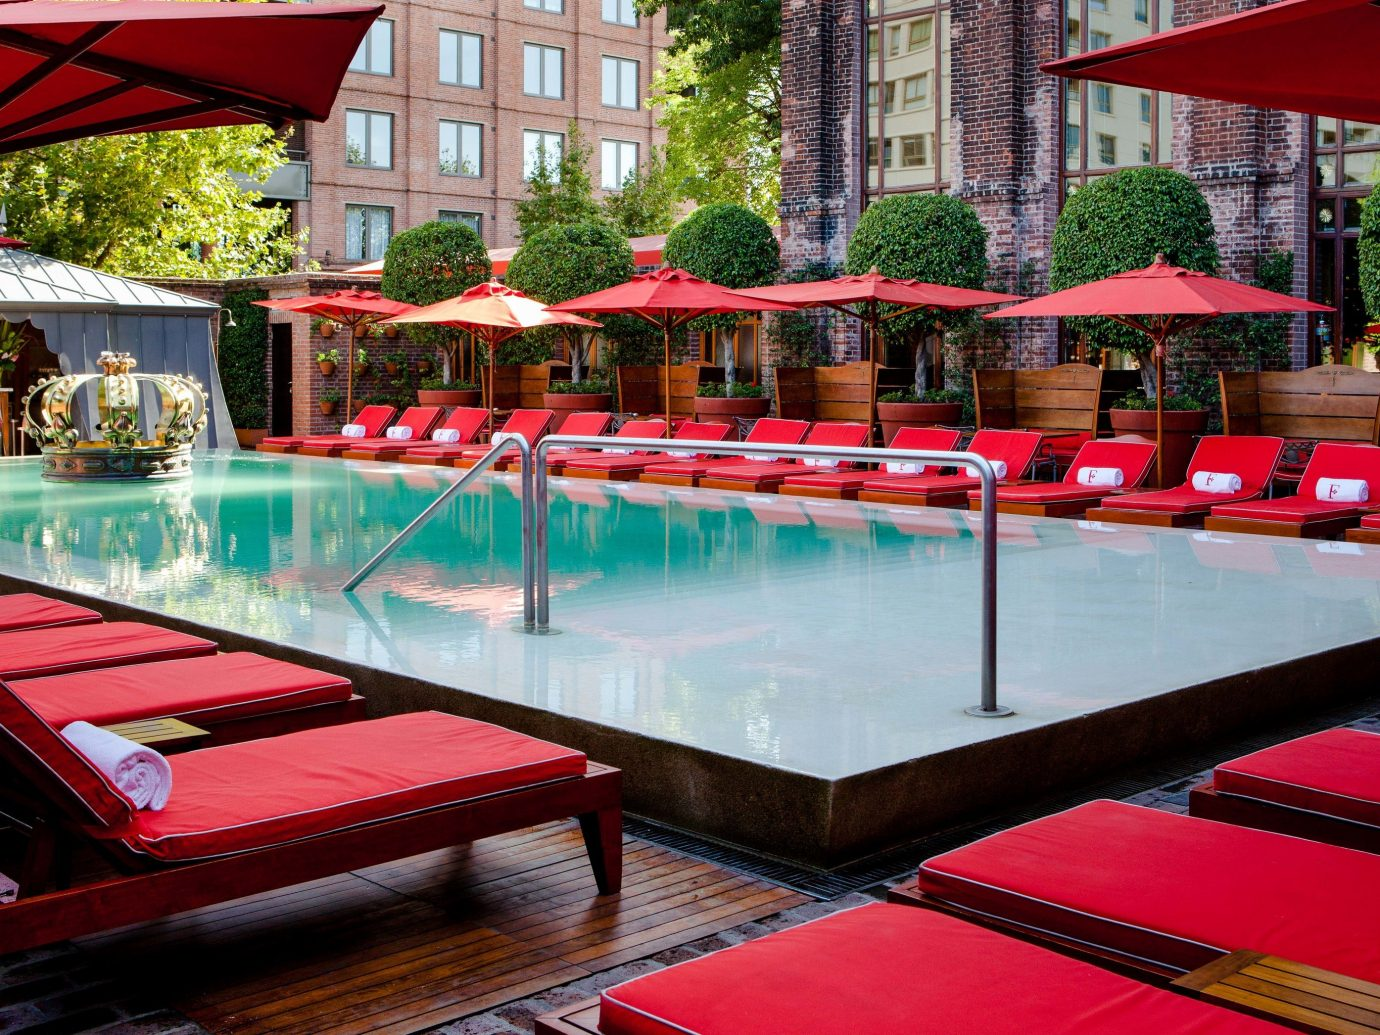 Boutique Hotels Luxury Travel building outdoor red swimming pool leisure table Resort recreation room leisure centre amenity hotel colorful